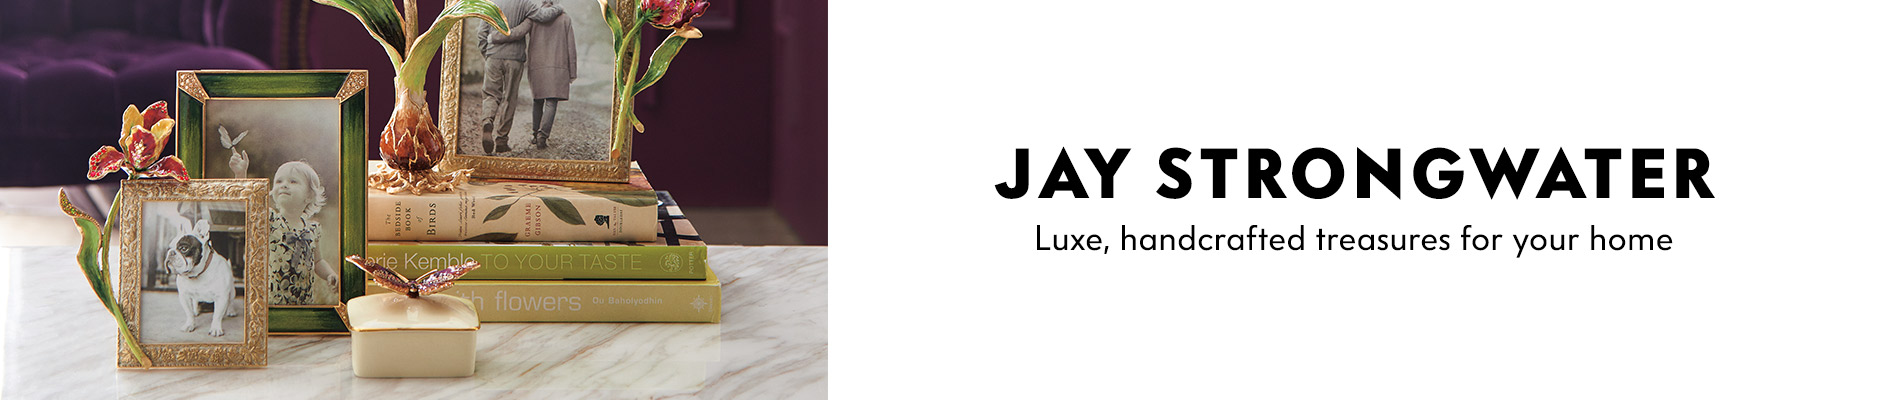 Jay Strongwater - Luxe, handcrafted treasures for your home